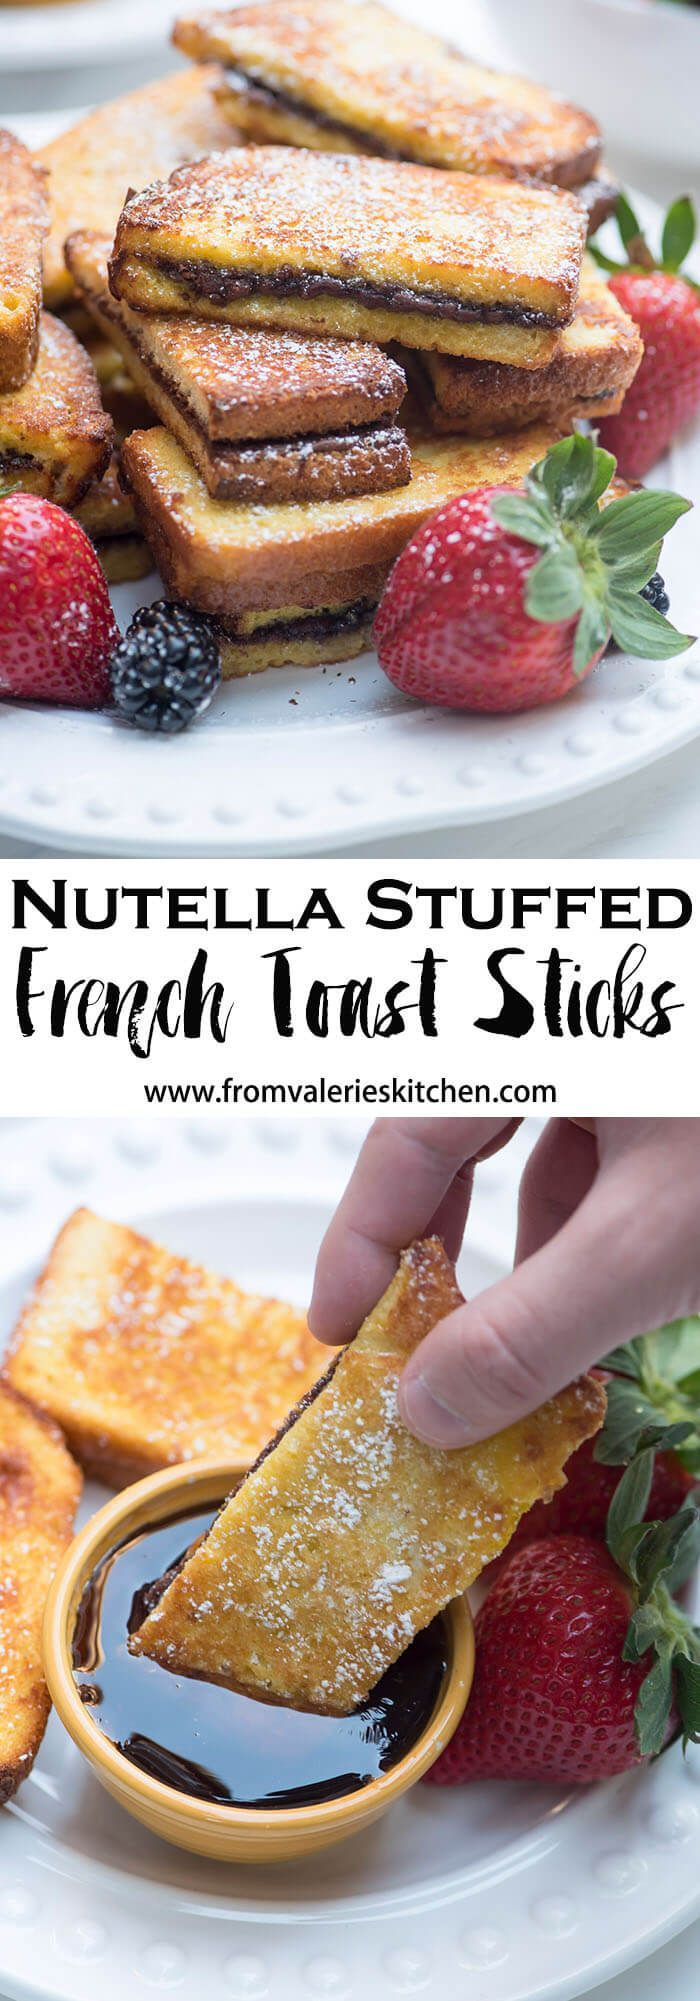 These Nutella Stuffed French Toast Sticks Are An Awesome Busy Morning Breakfast Option But Pretty Enough